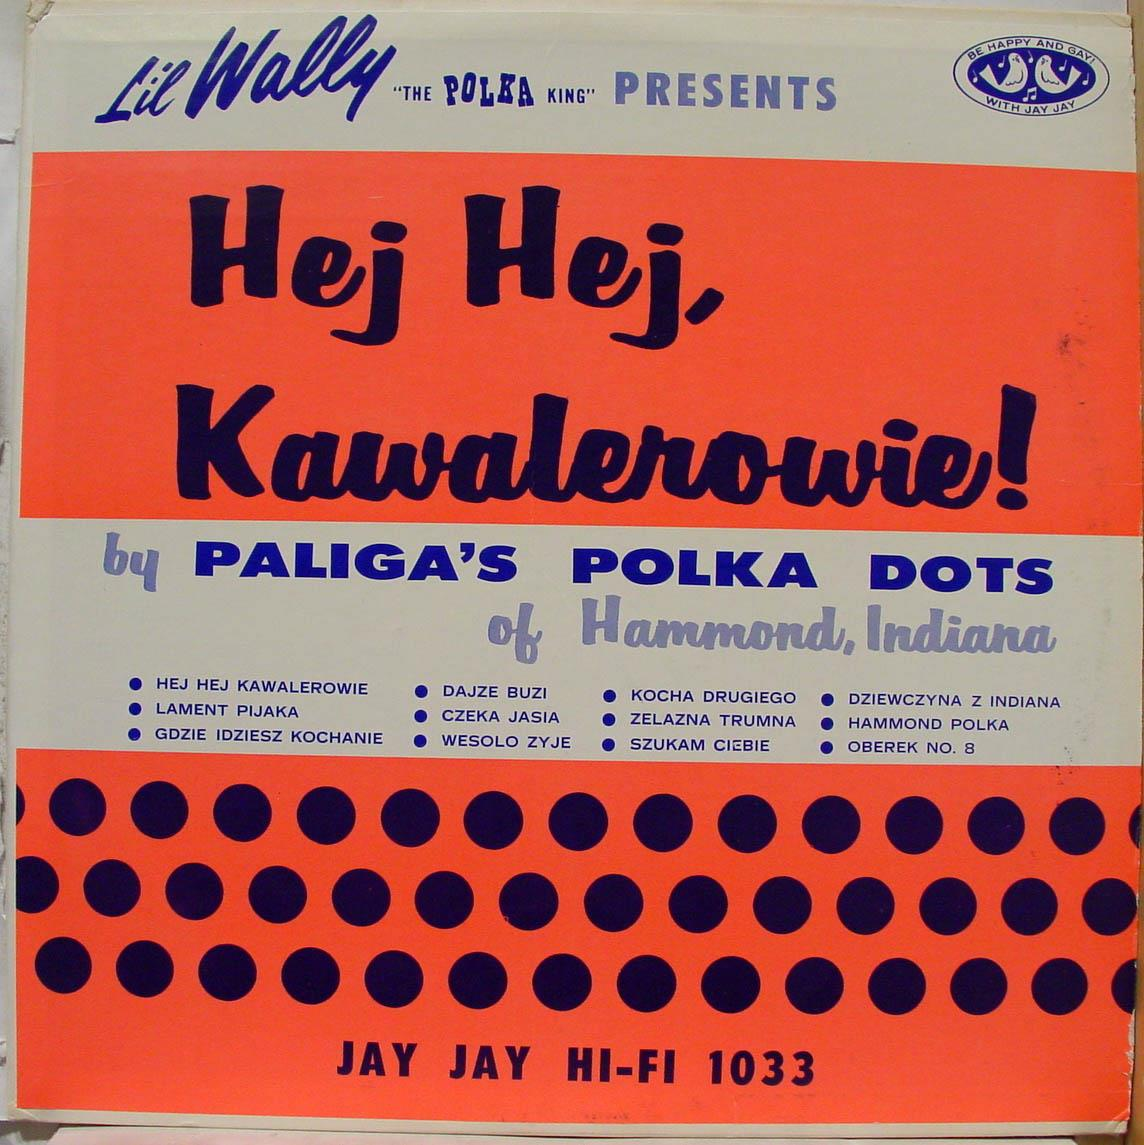 Paliga's Polka Dots Li'l Wally Presents Lp Jay Jay Lp 1033 Vg Vinyl Record